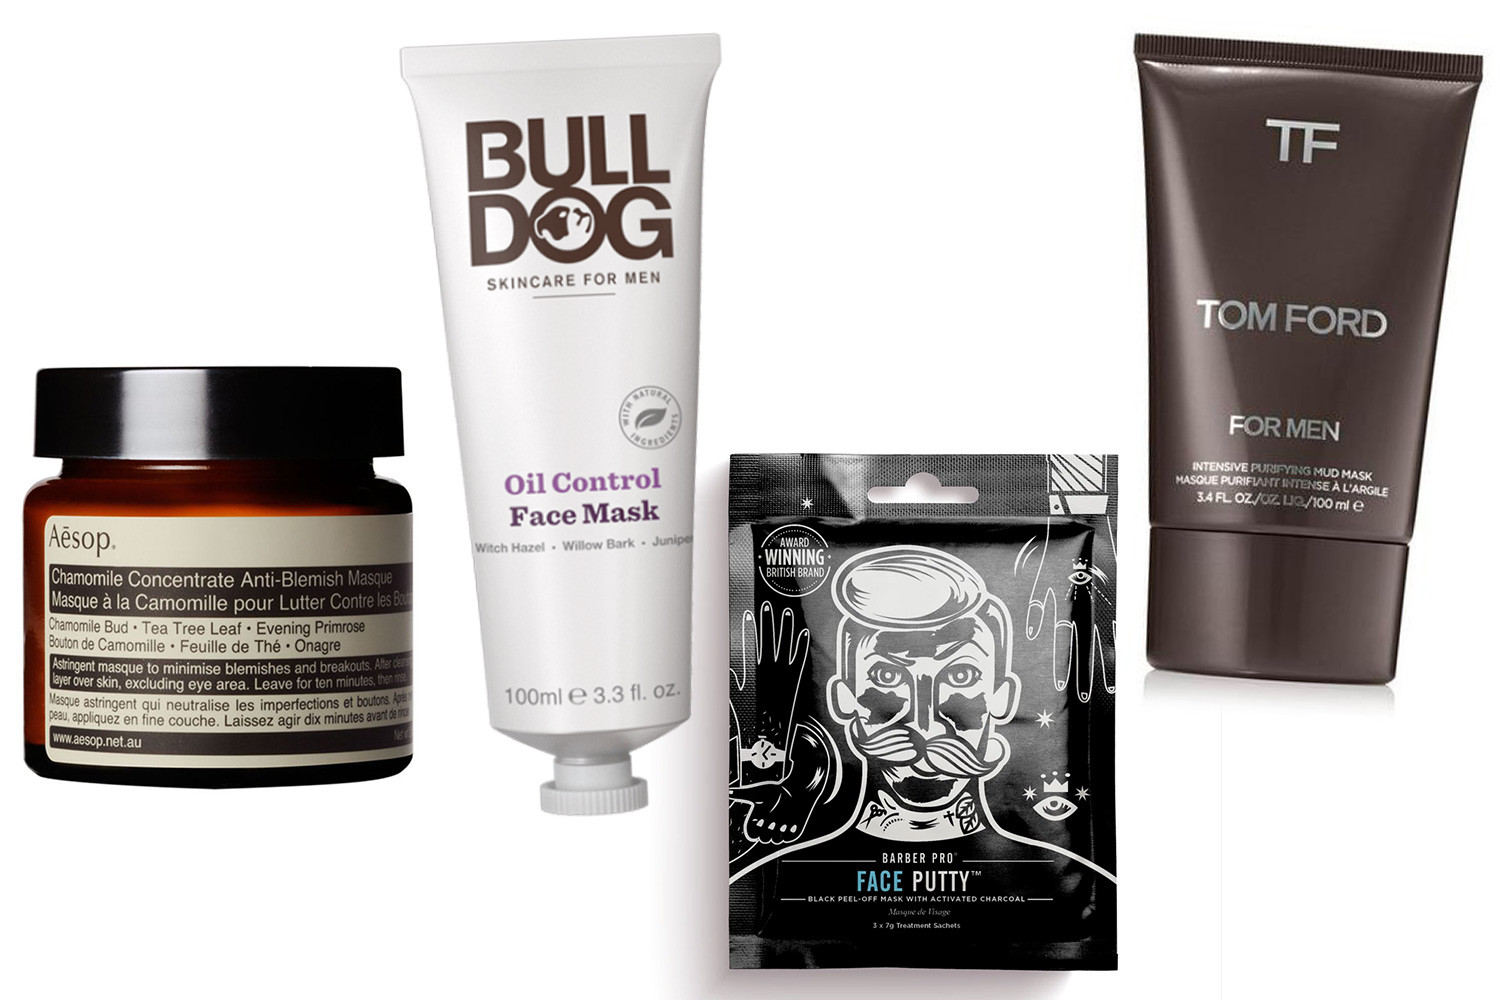 The best men's face mask will brighten up skin and clear away blemishes, from brands like Bulldog and Aesop